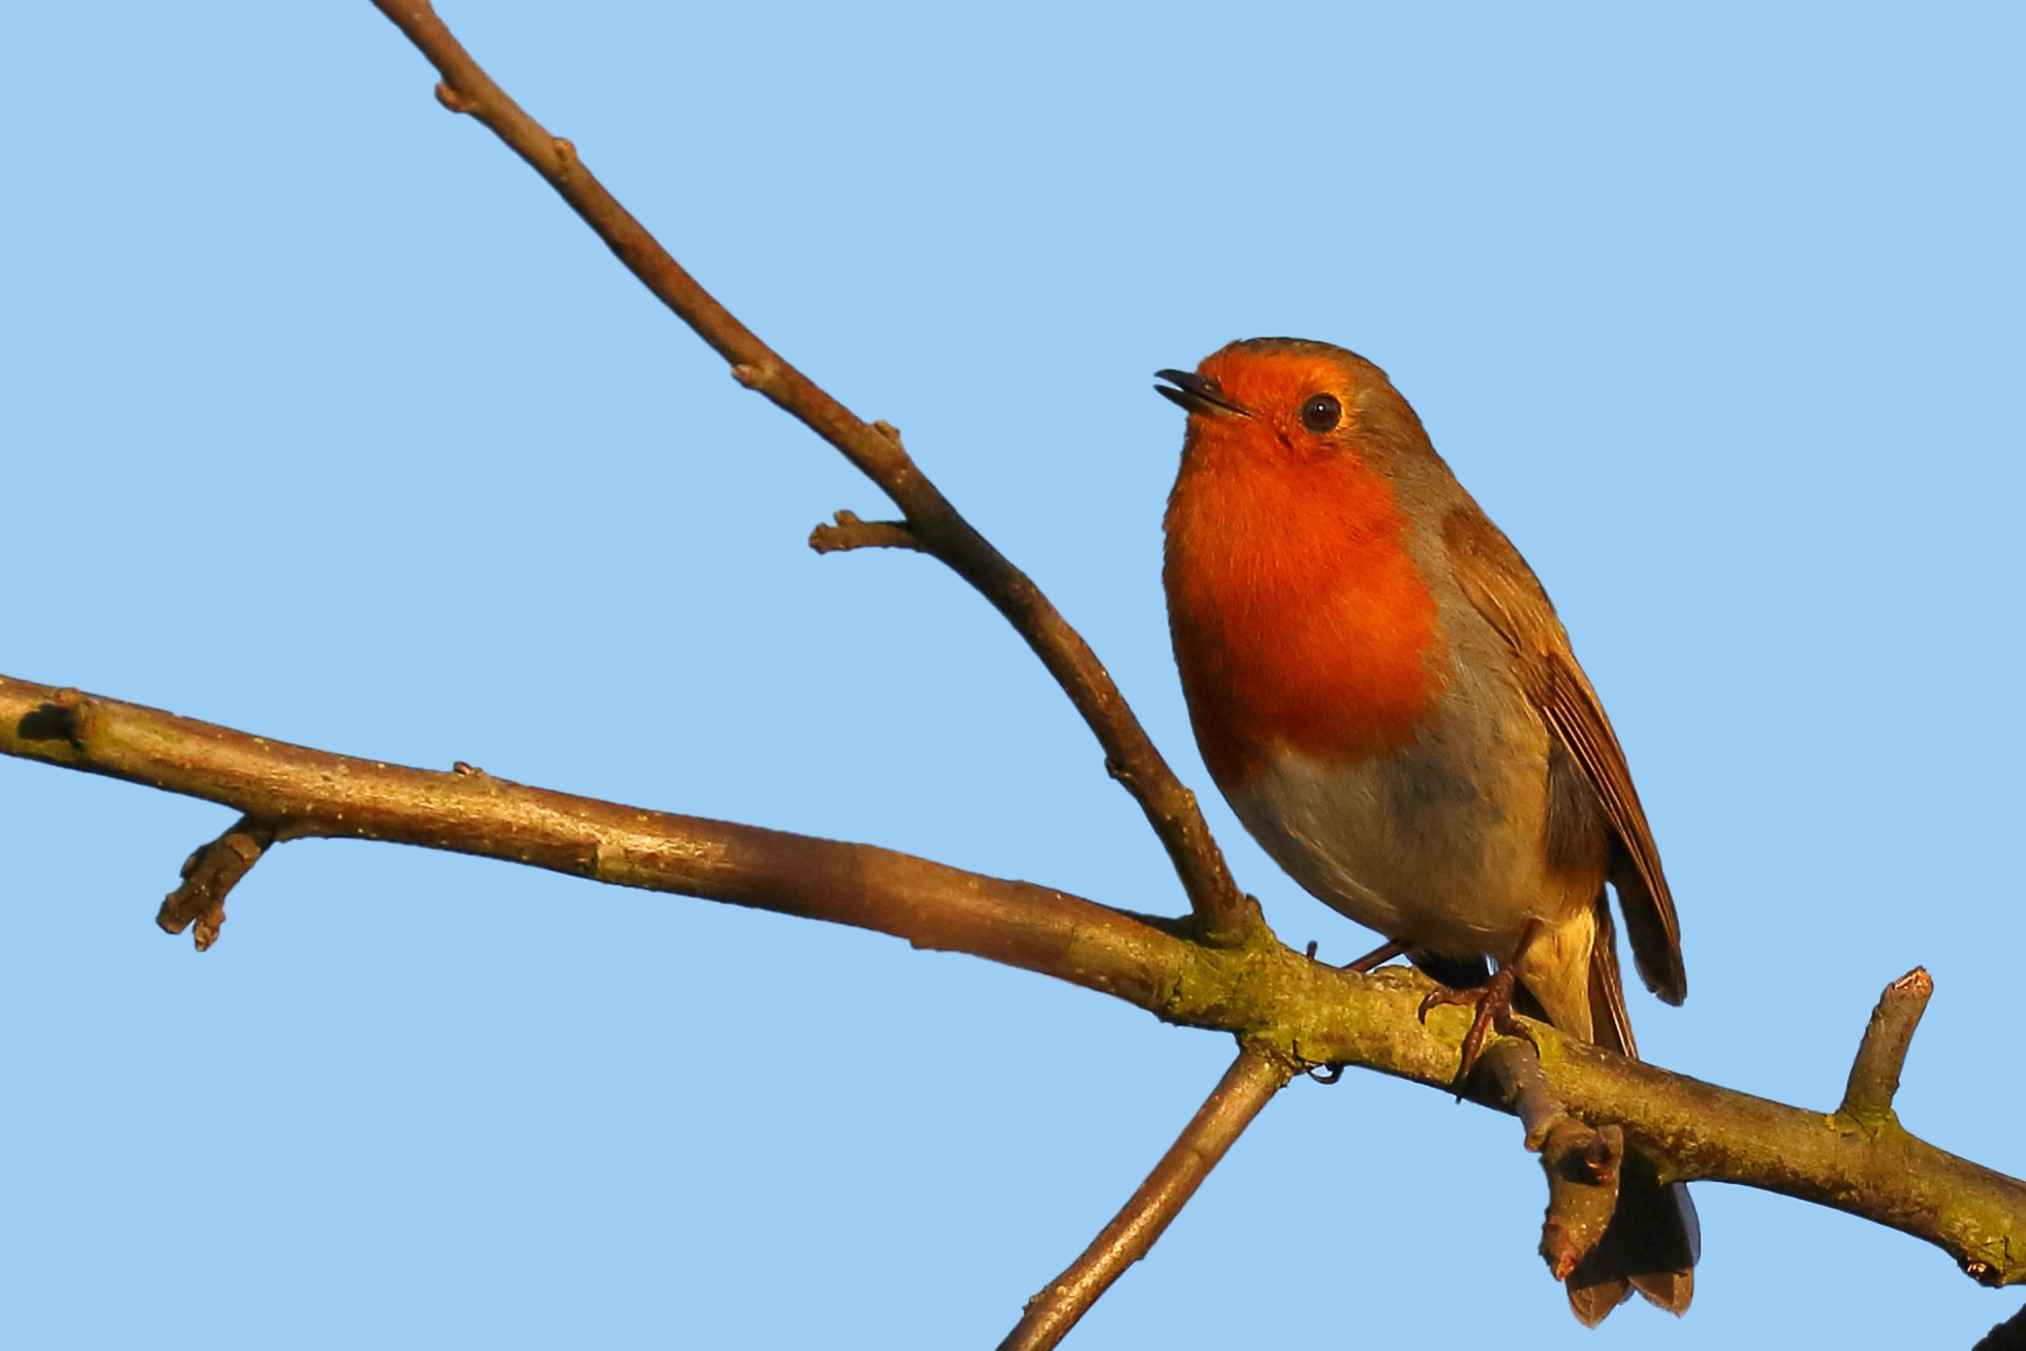 Robin Red Breast in Tree